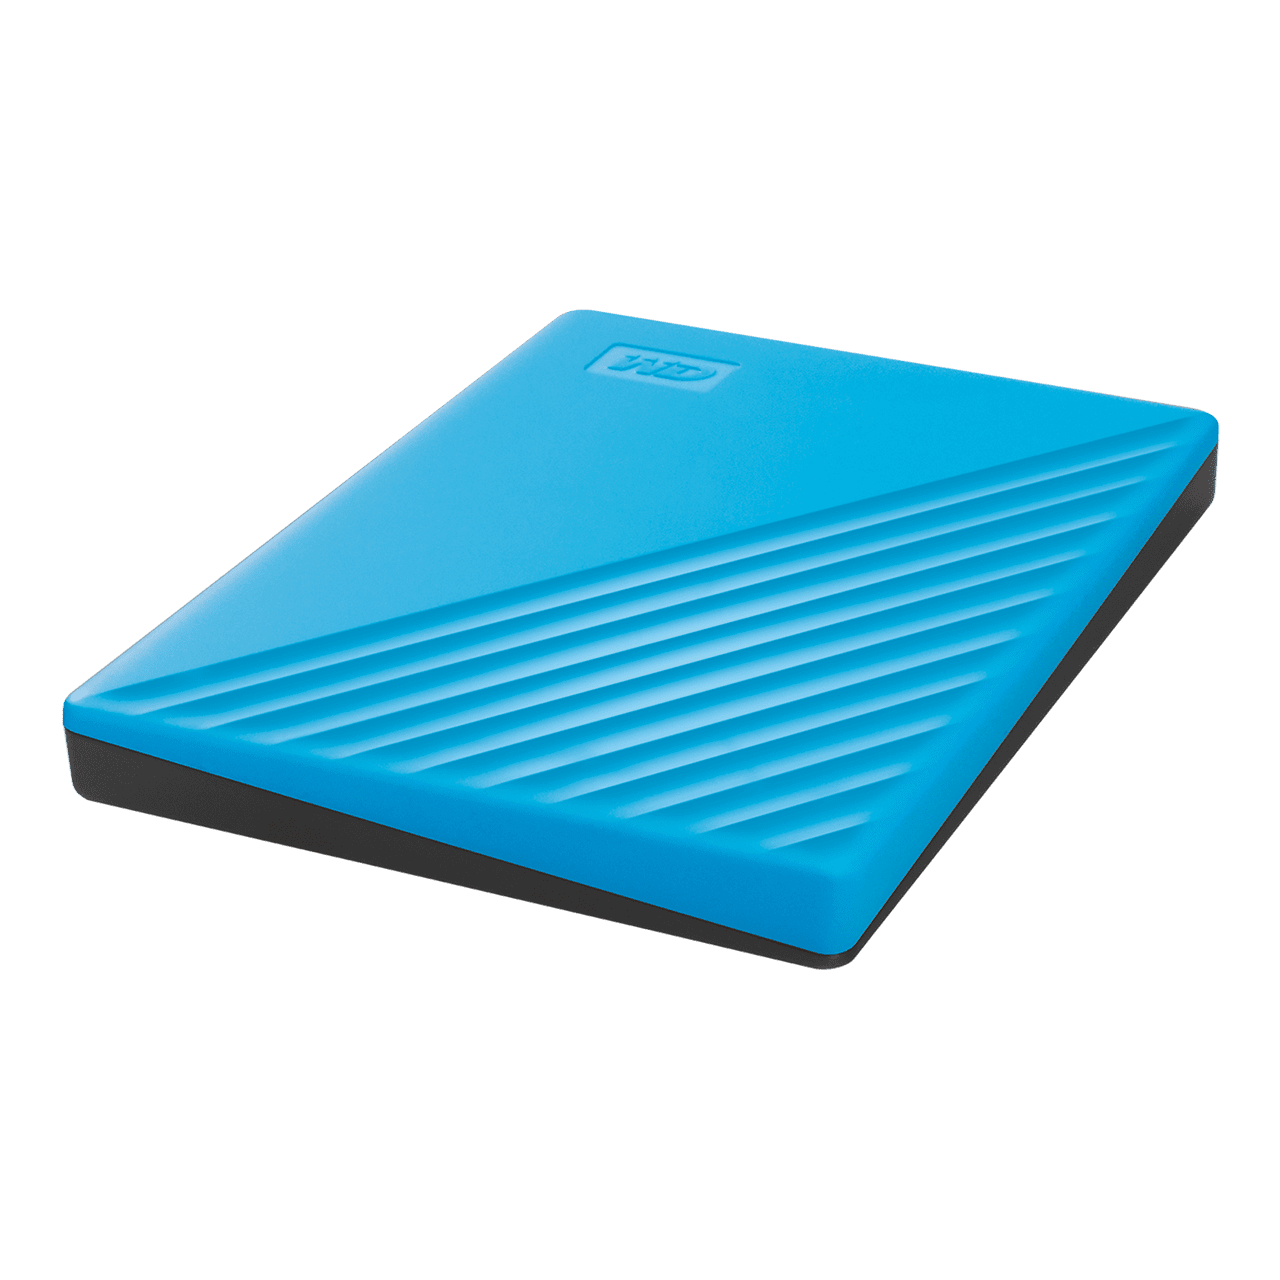 WD Western Digital My Passport 2TB Slim Portable External Hard Disk USB 3.0 With WD Backup Software & Password Protection - Blue